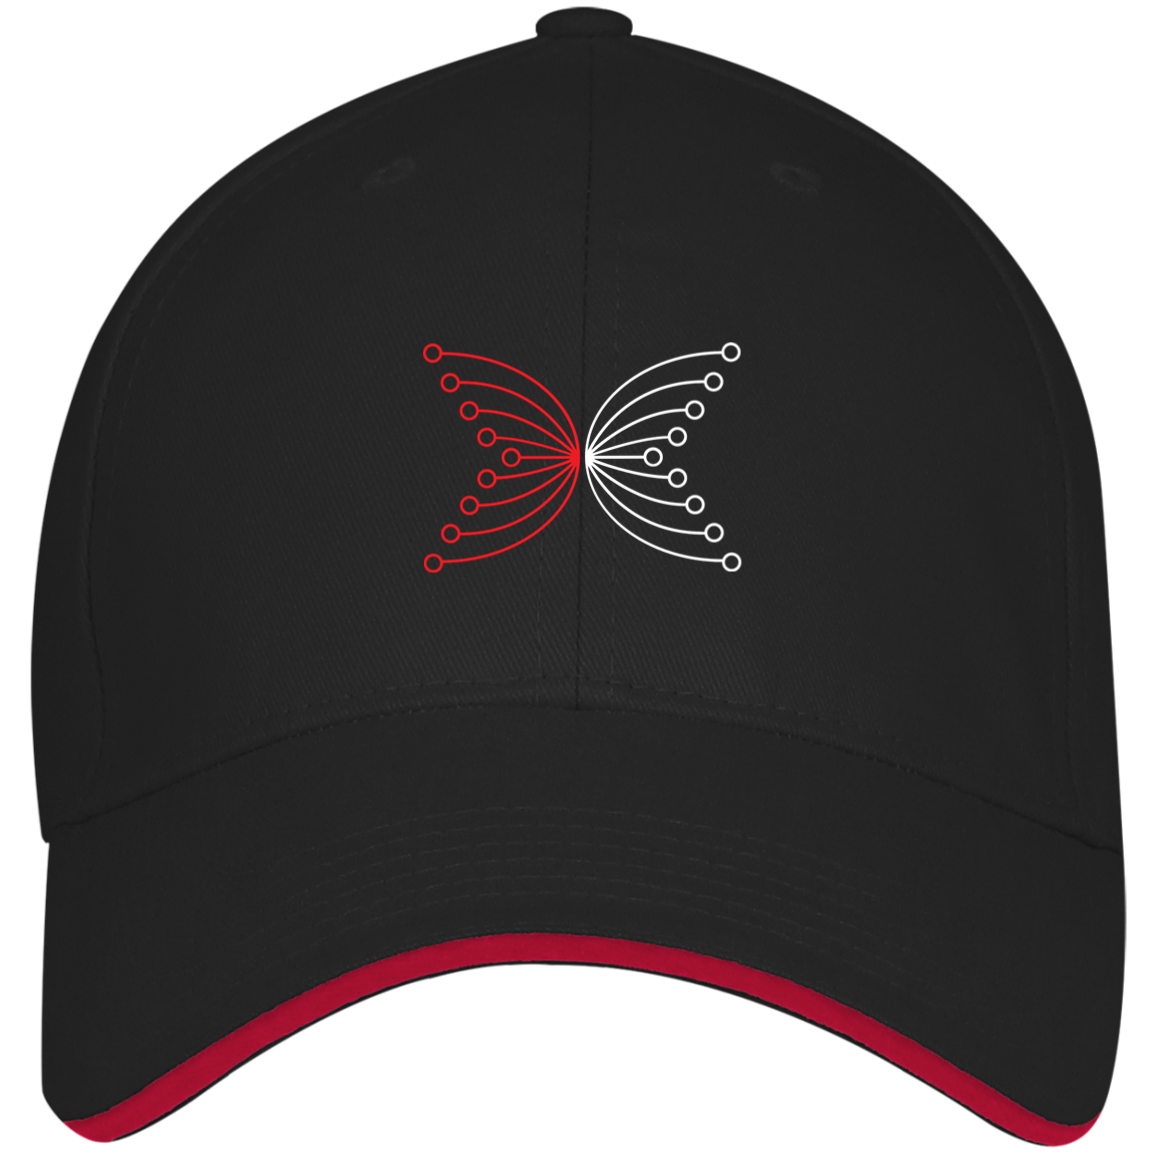 IOHK Structured Twill Cap With Sandwich Visor